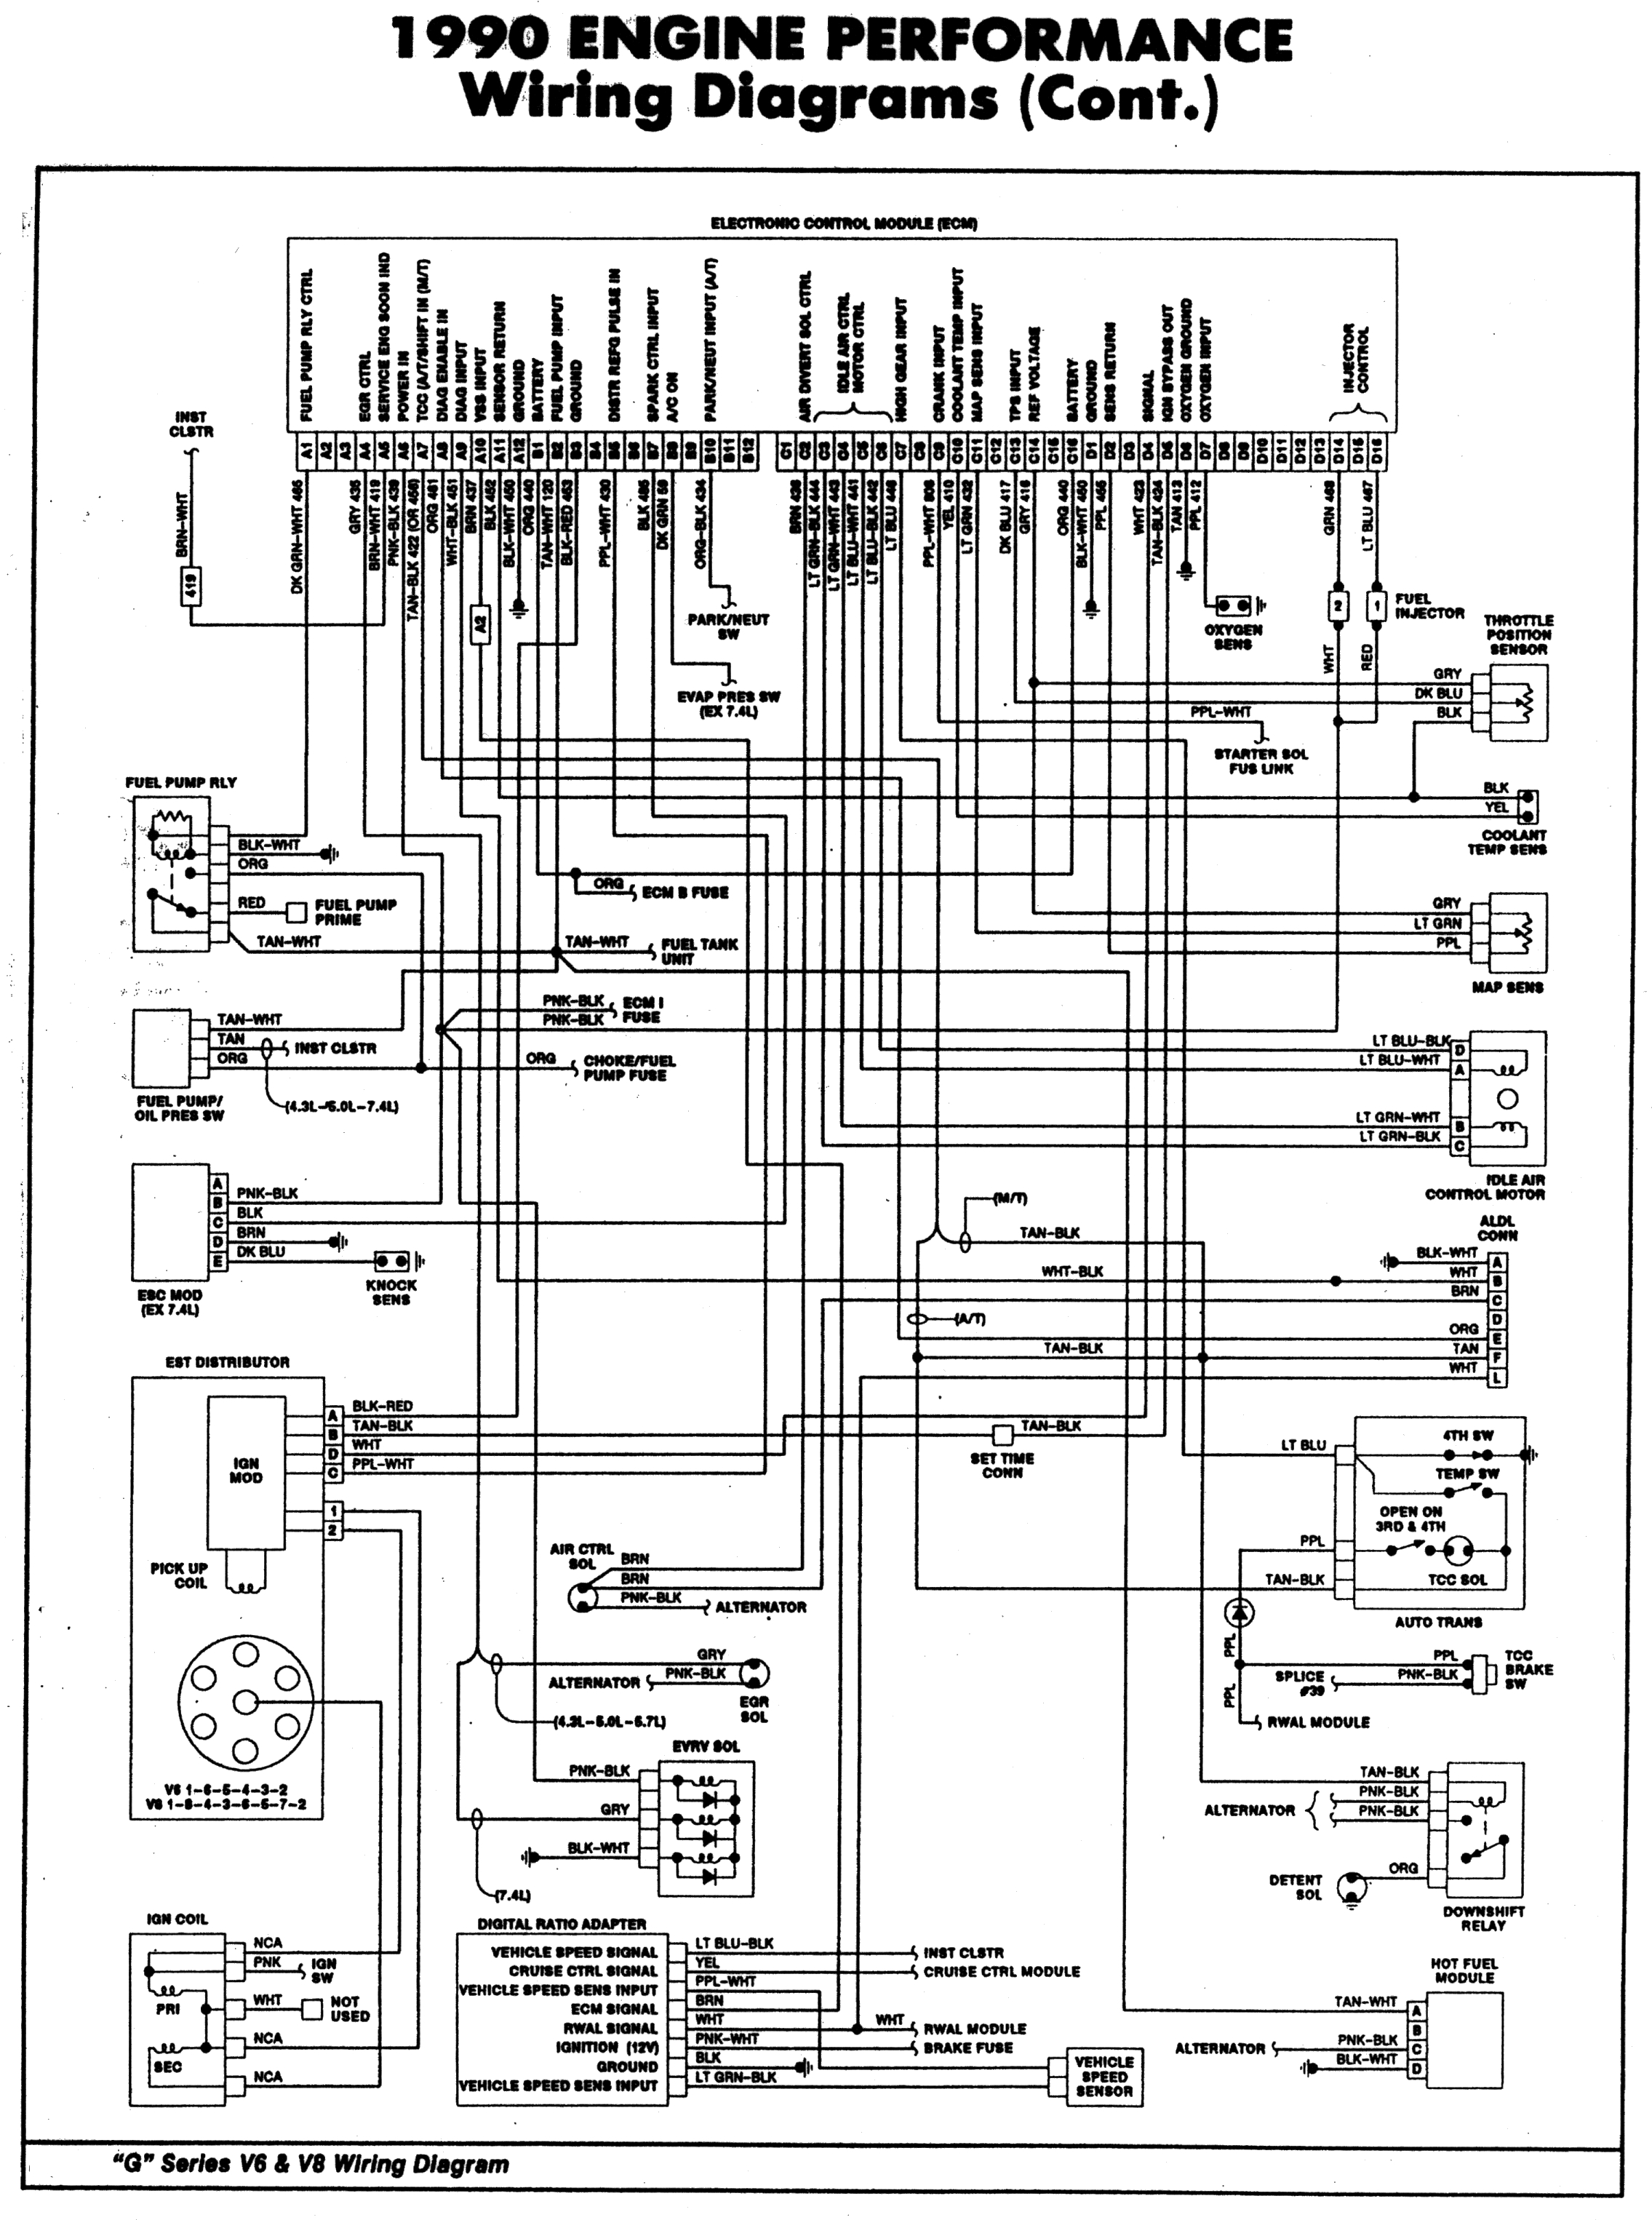 1990 Chevy Truck Ecm Wiring - Wiring Diagram Detailed - 1990 Chevy Truck Wiring Diagram